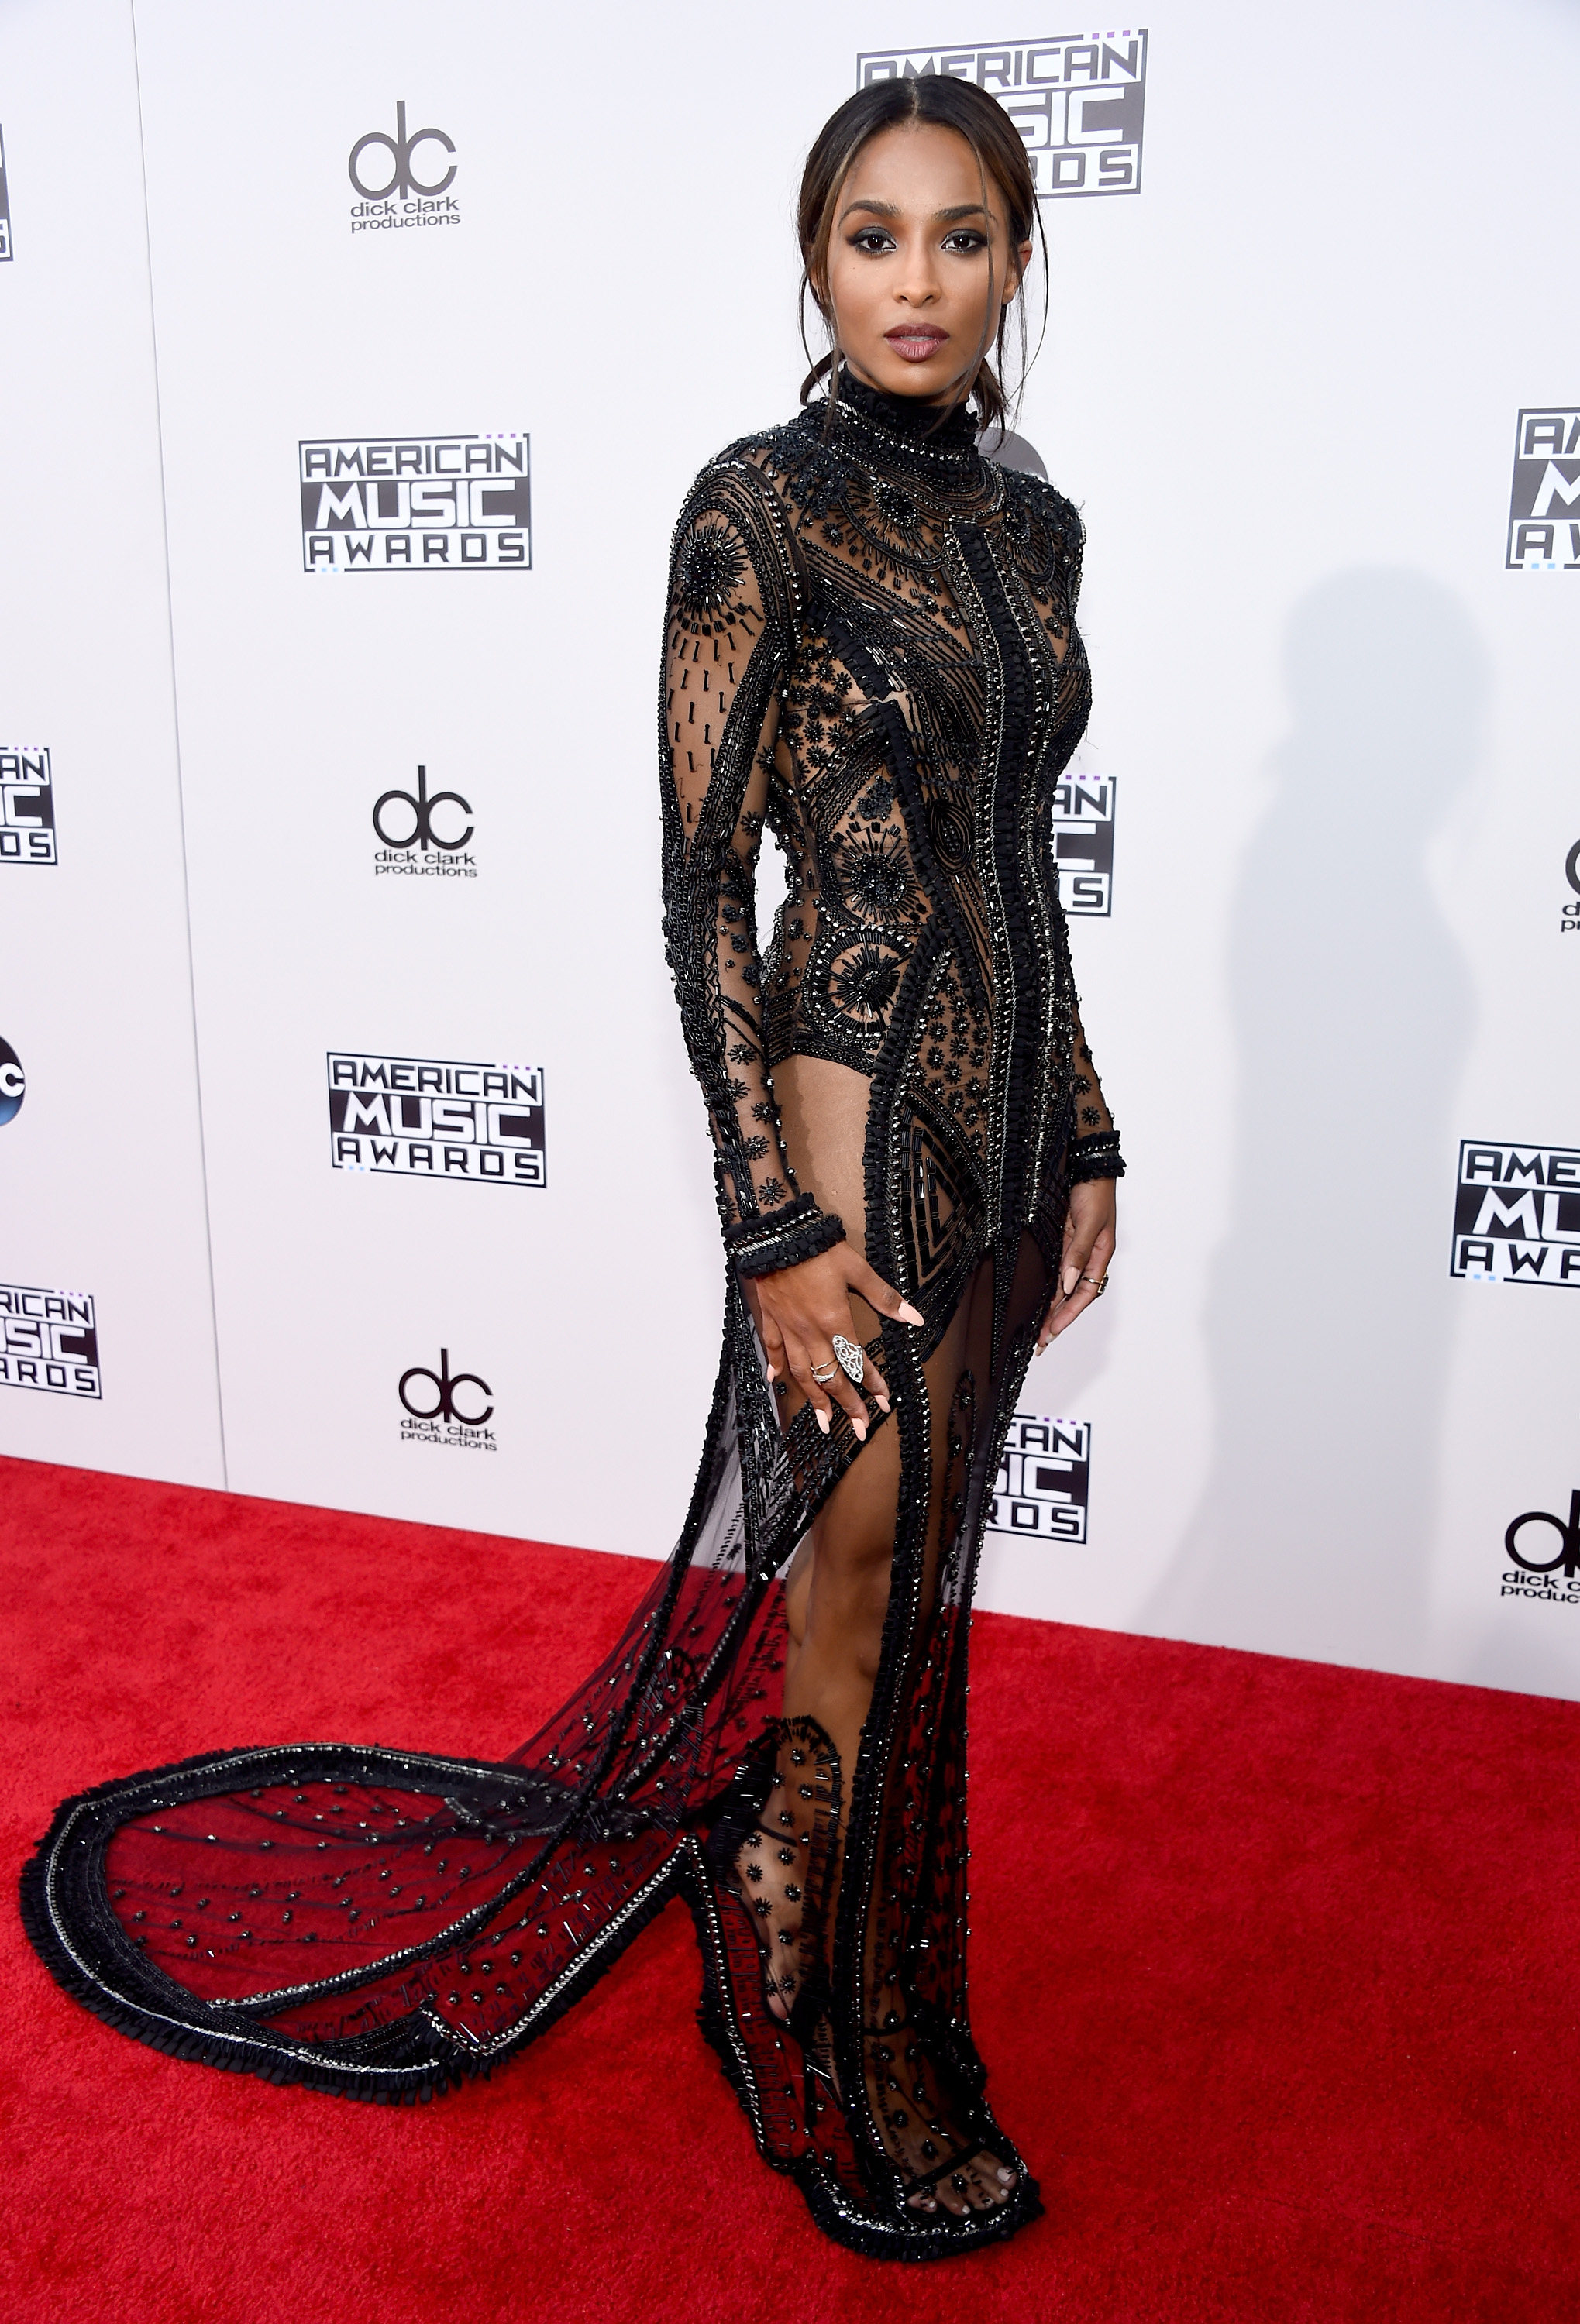 Frazer Harrison/AMA2015/Getty Images for dcp